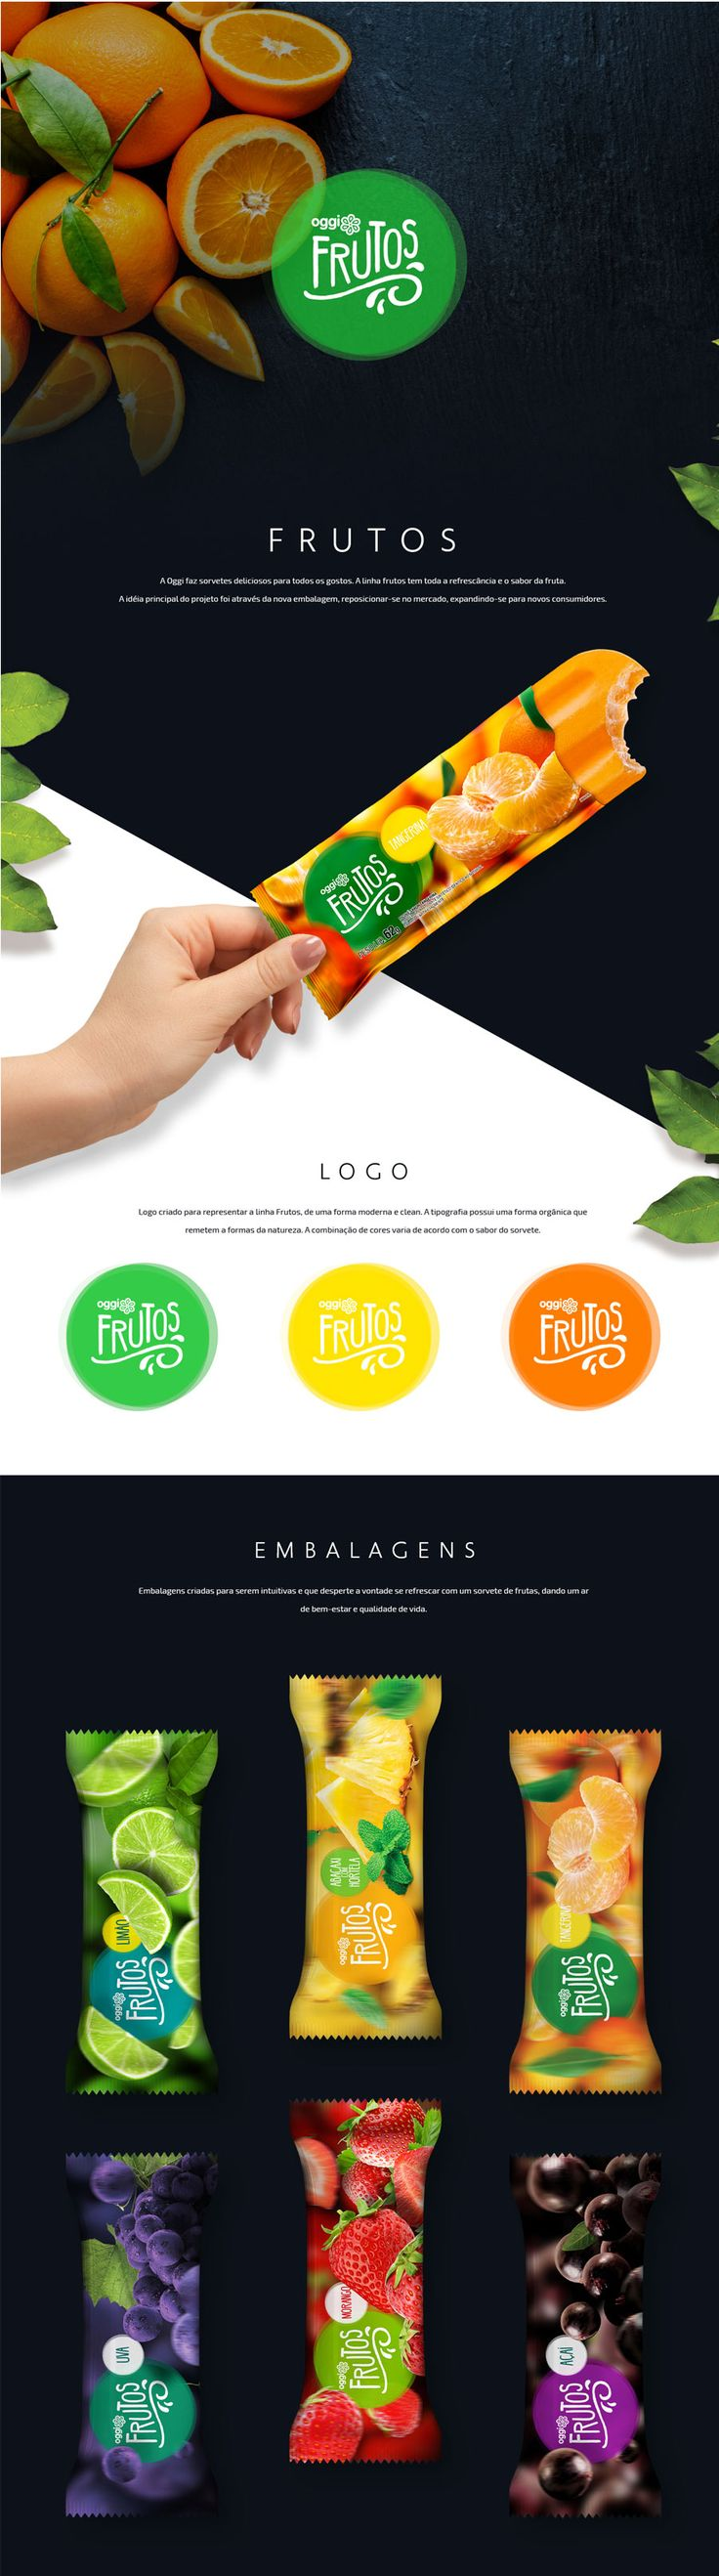 Fresh Package Design Concept